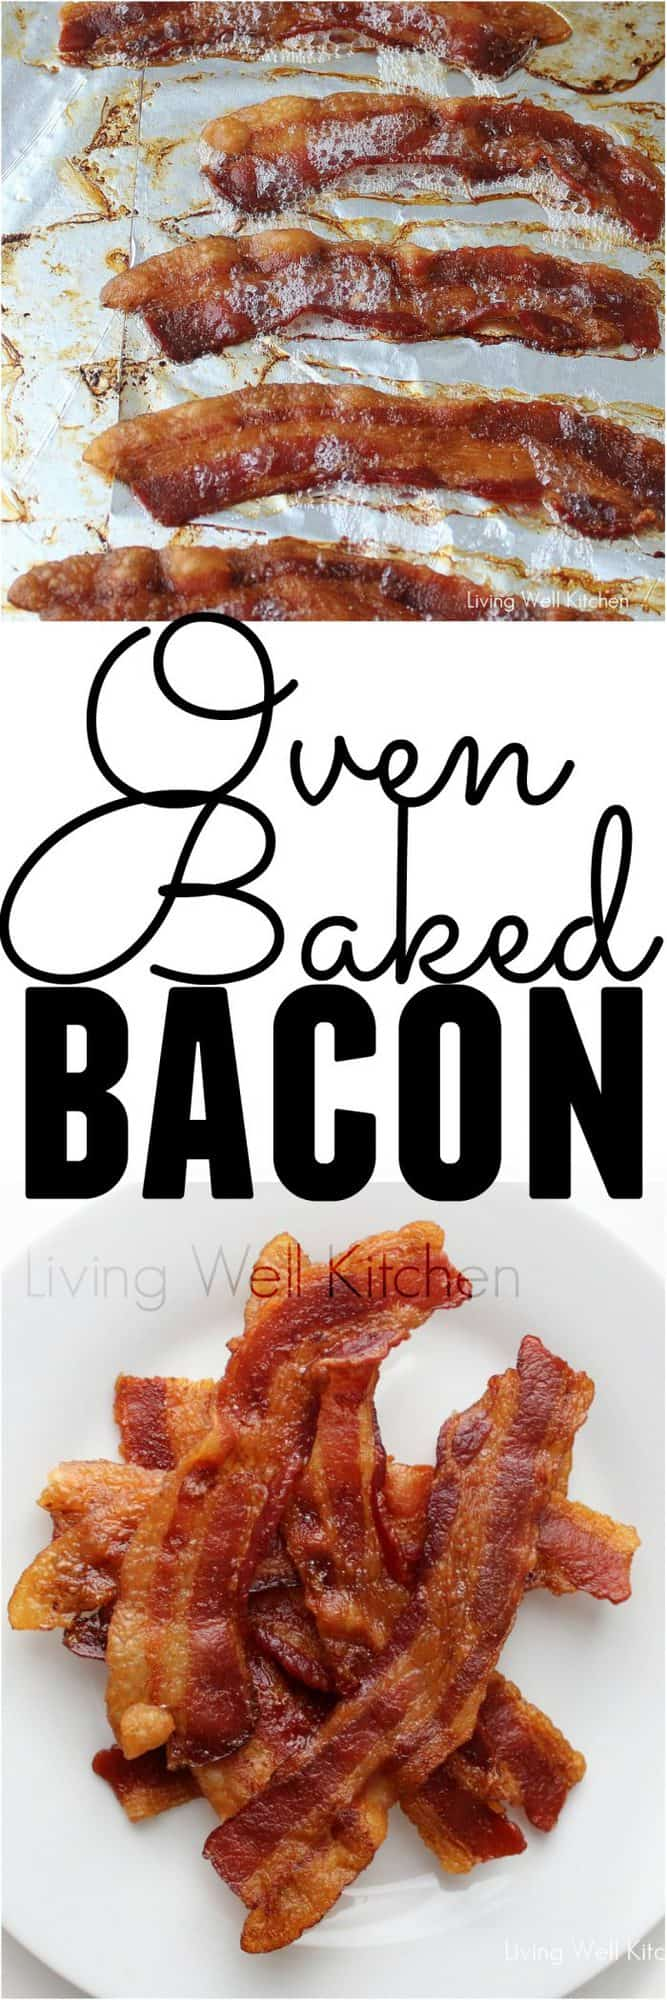 Cooking Bacon In The Oven Is Much Easier And Not Nearly As Messy Or Painful